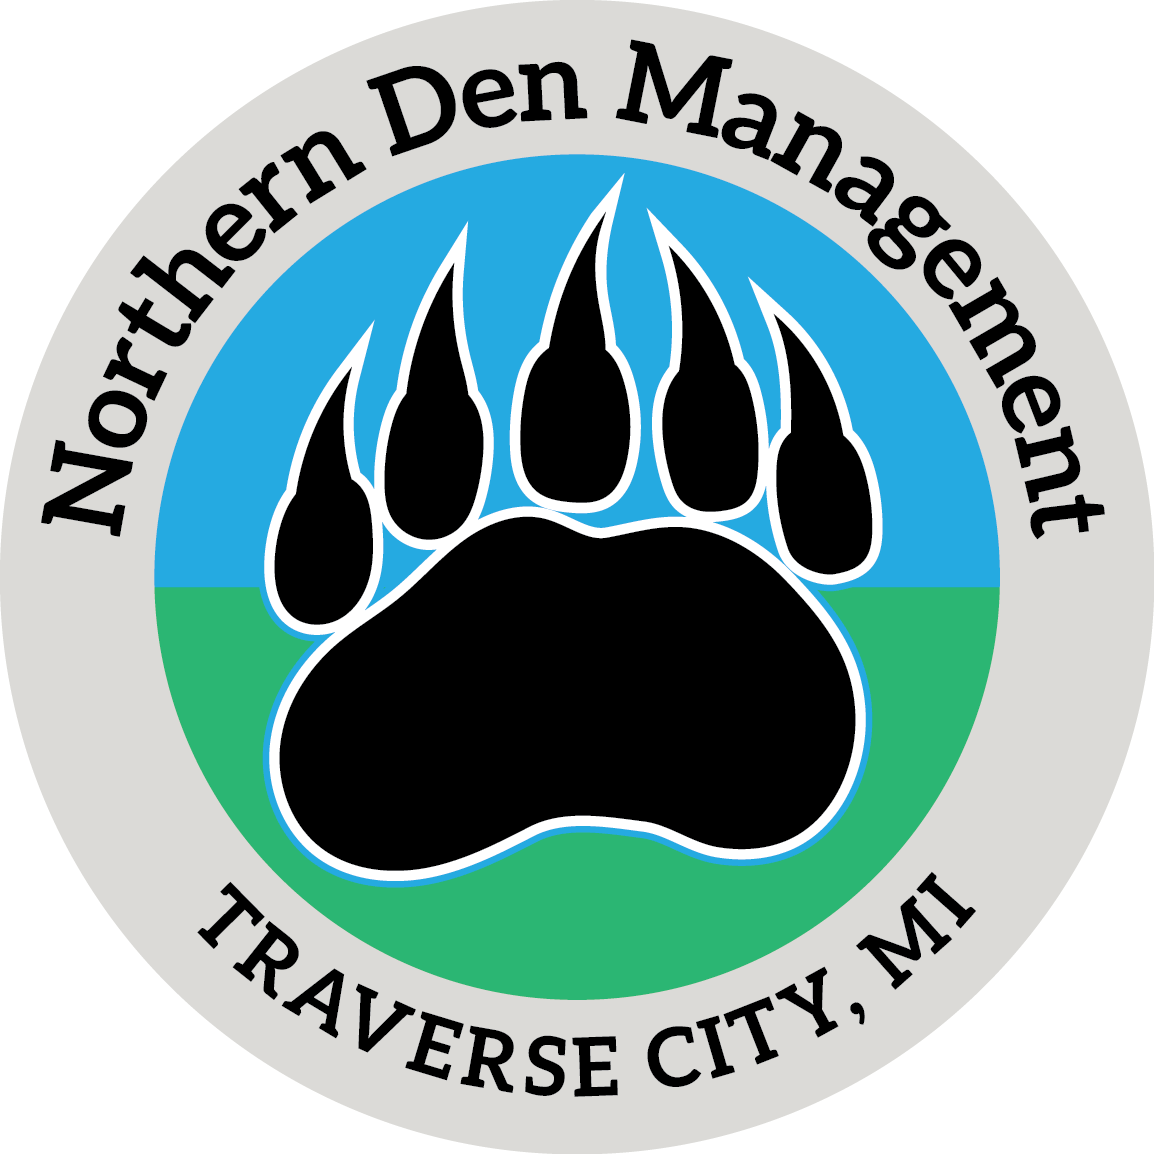 Northern Den Management LLC